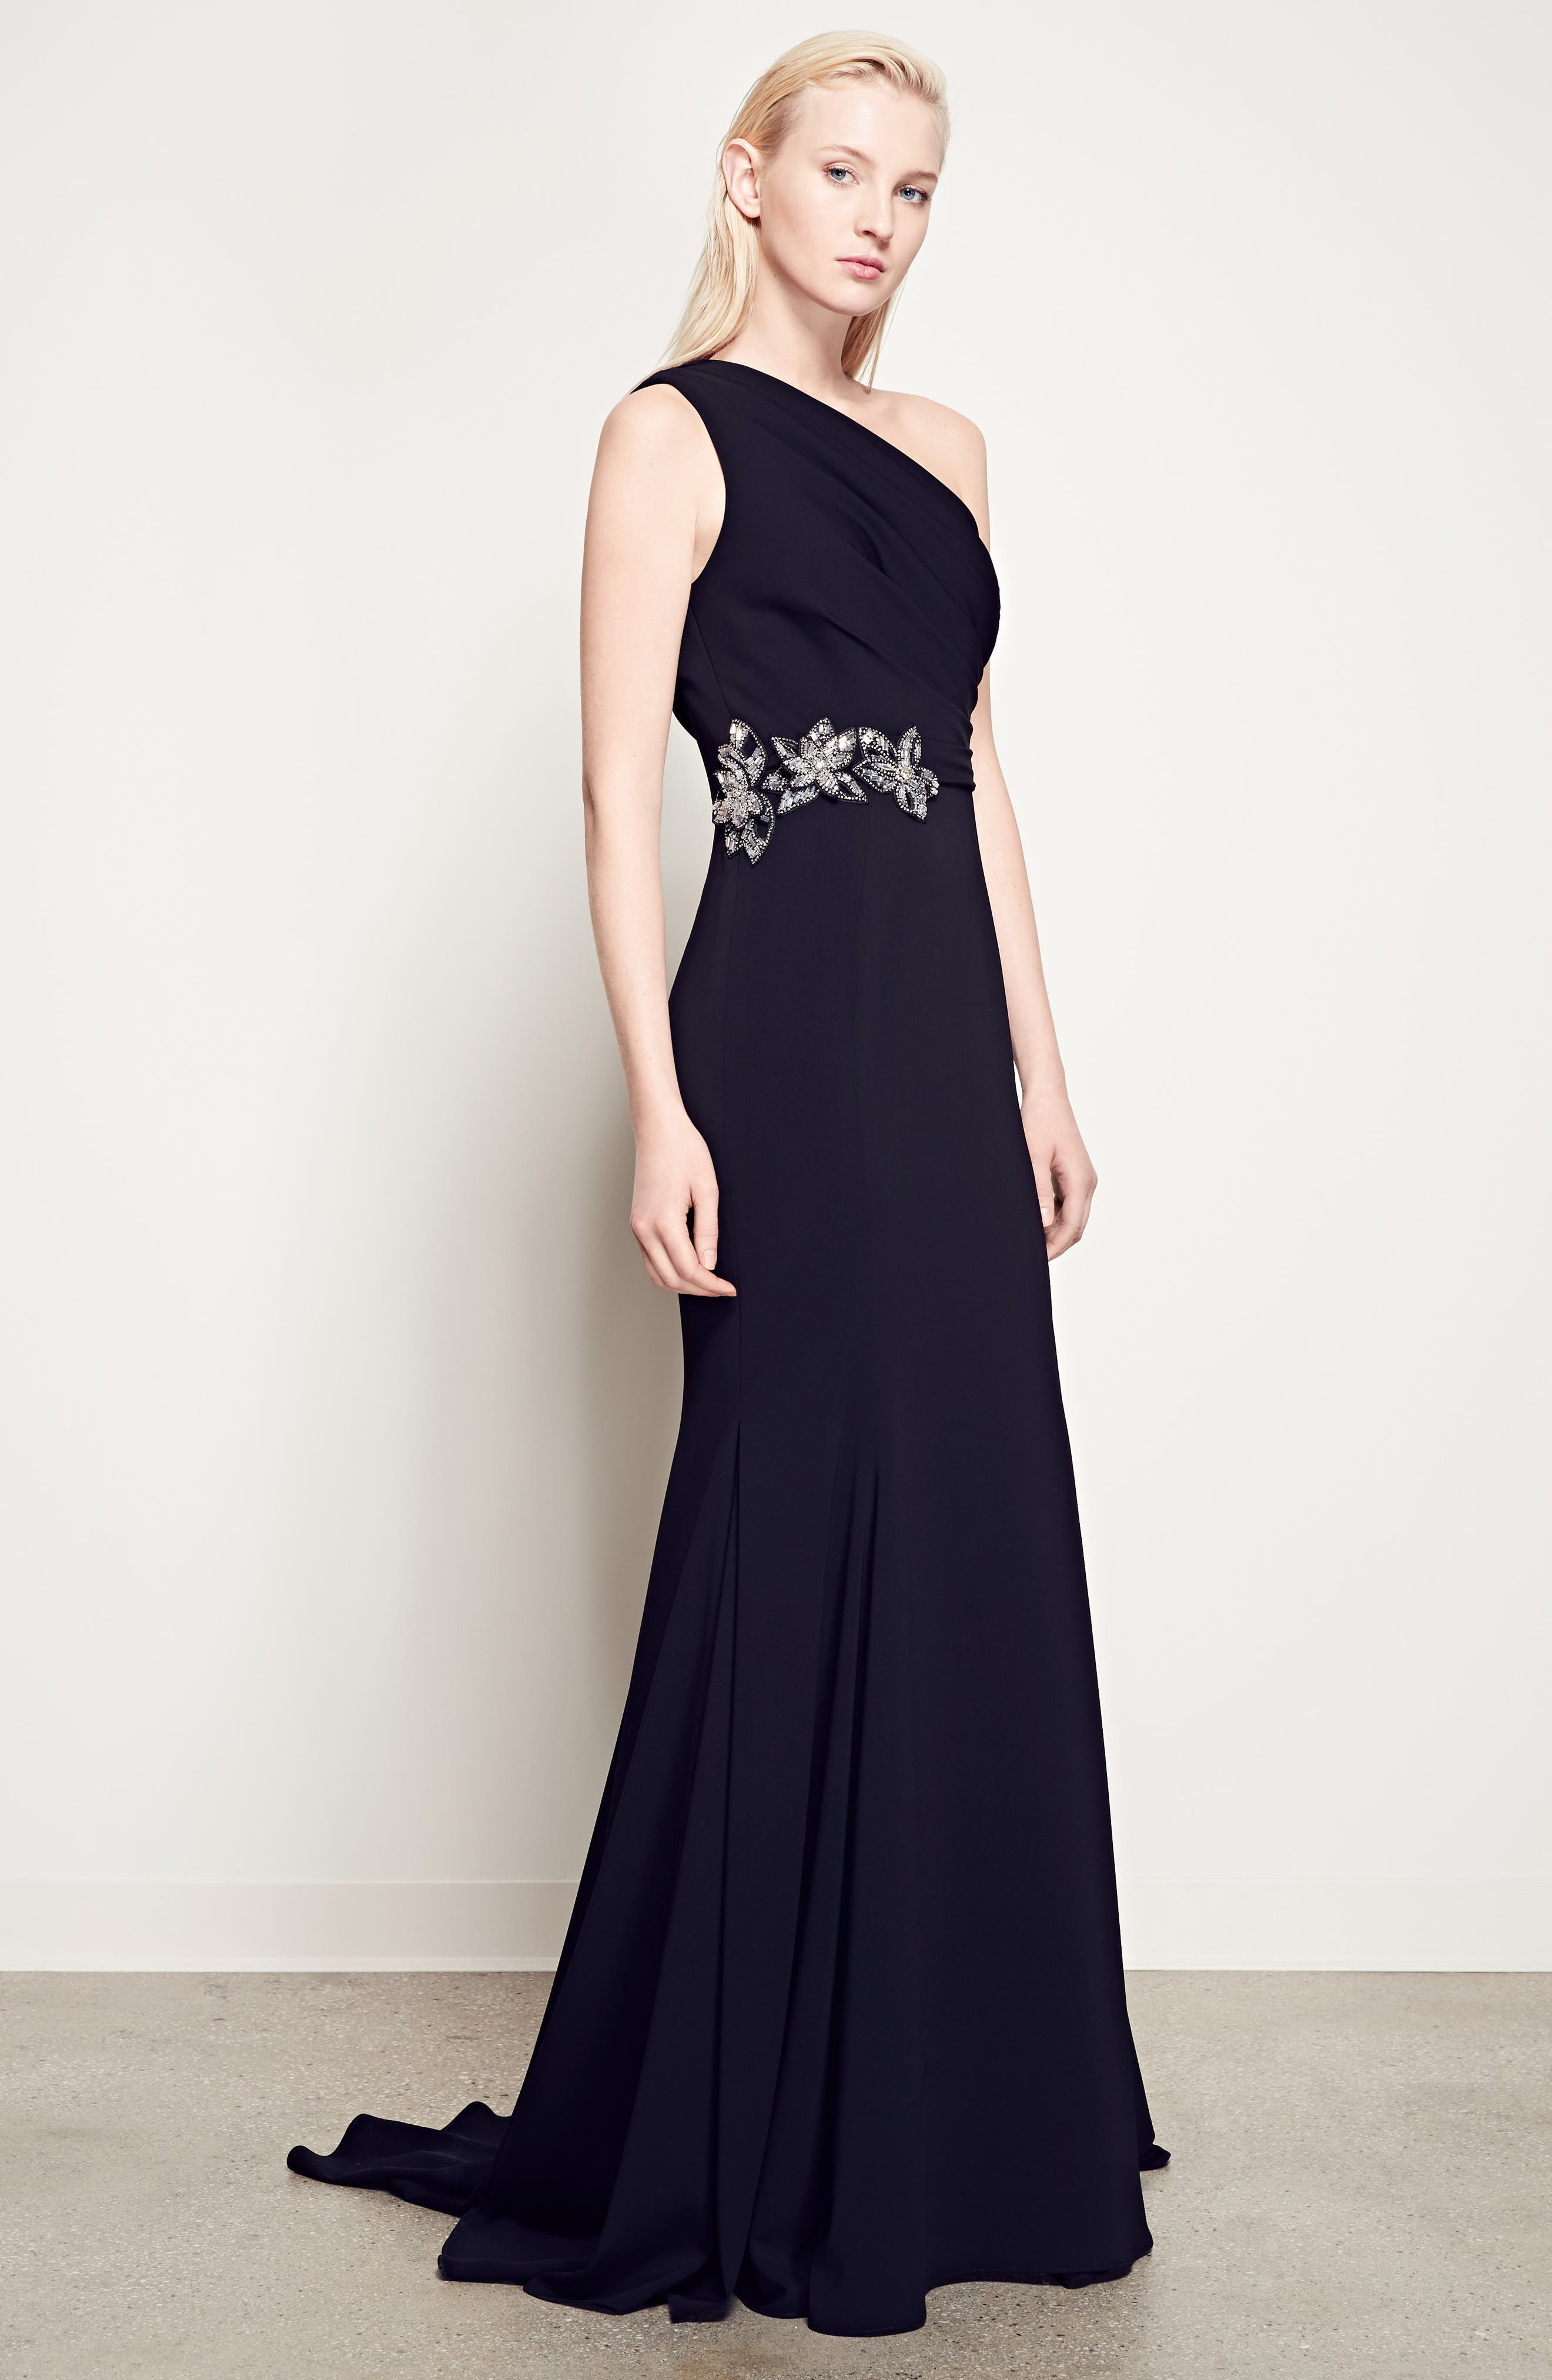 Badgley Mischka Couture Odessa Embellished One-Shoulder Gown,                             Main thumbnail 1, color,                             001